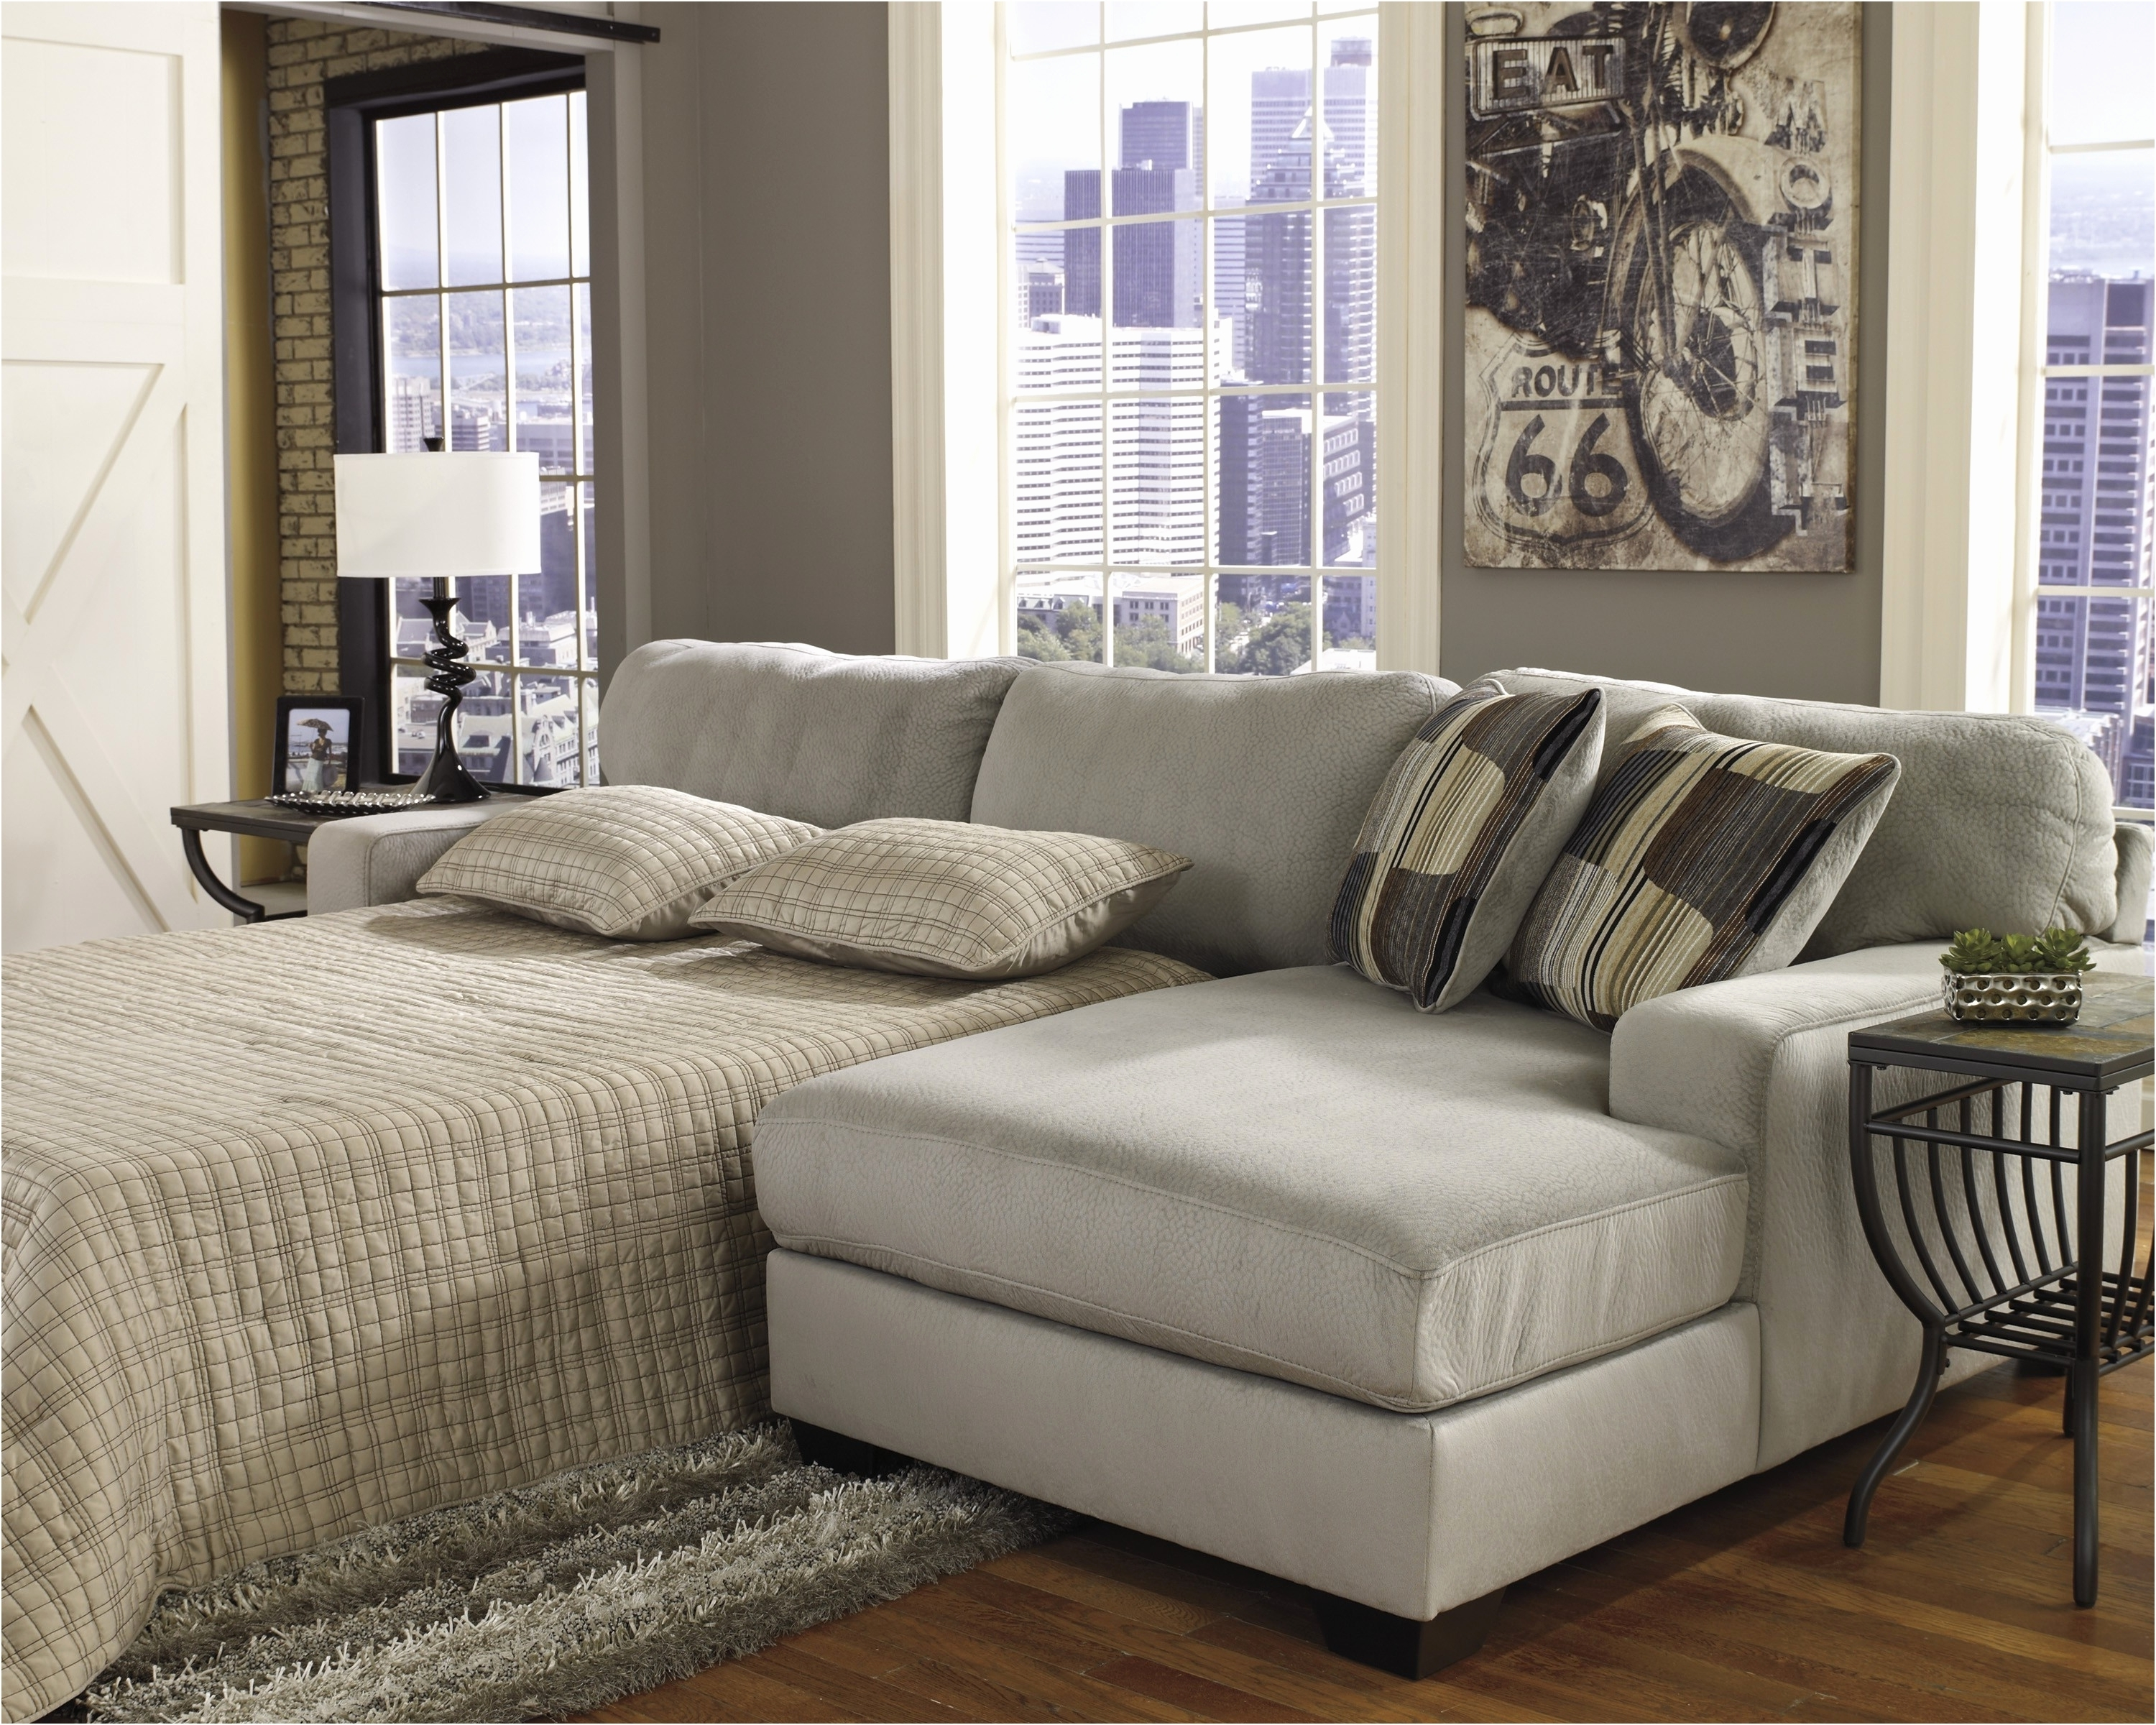 Most Recent Beautiful Large Sofa Pillows Unique – Intuisiblog With Regard To Sofas With Oversized Pillows (View 6 of 15)